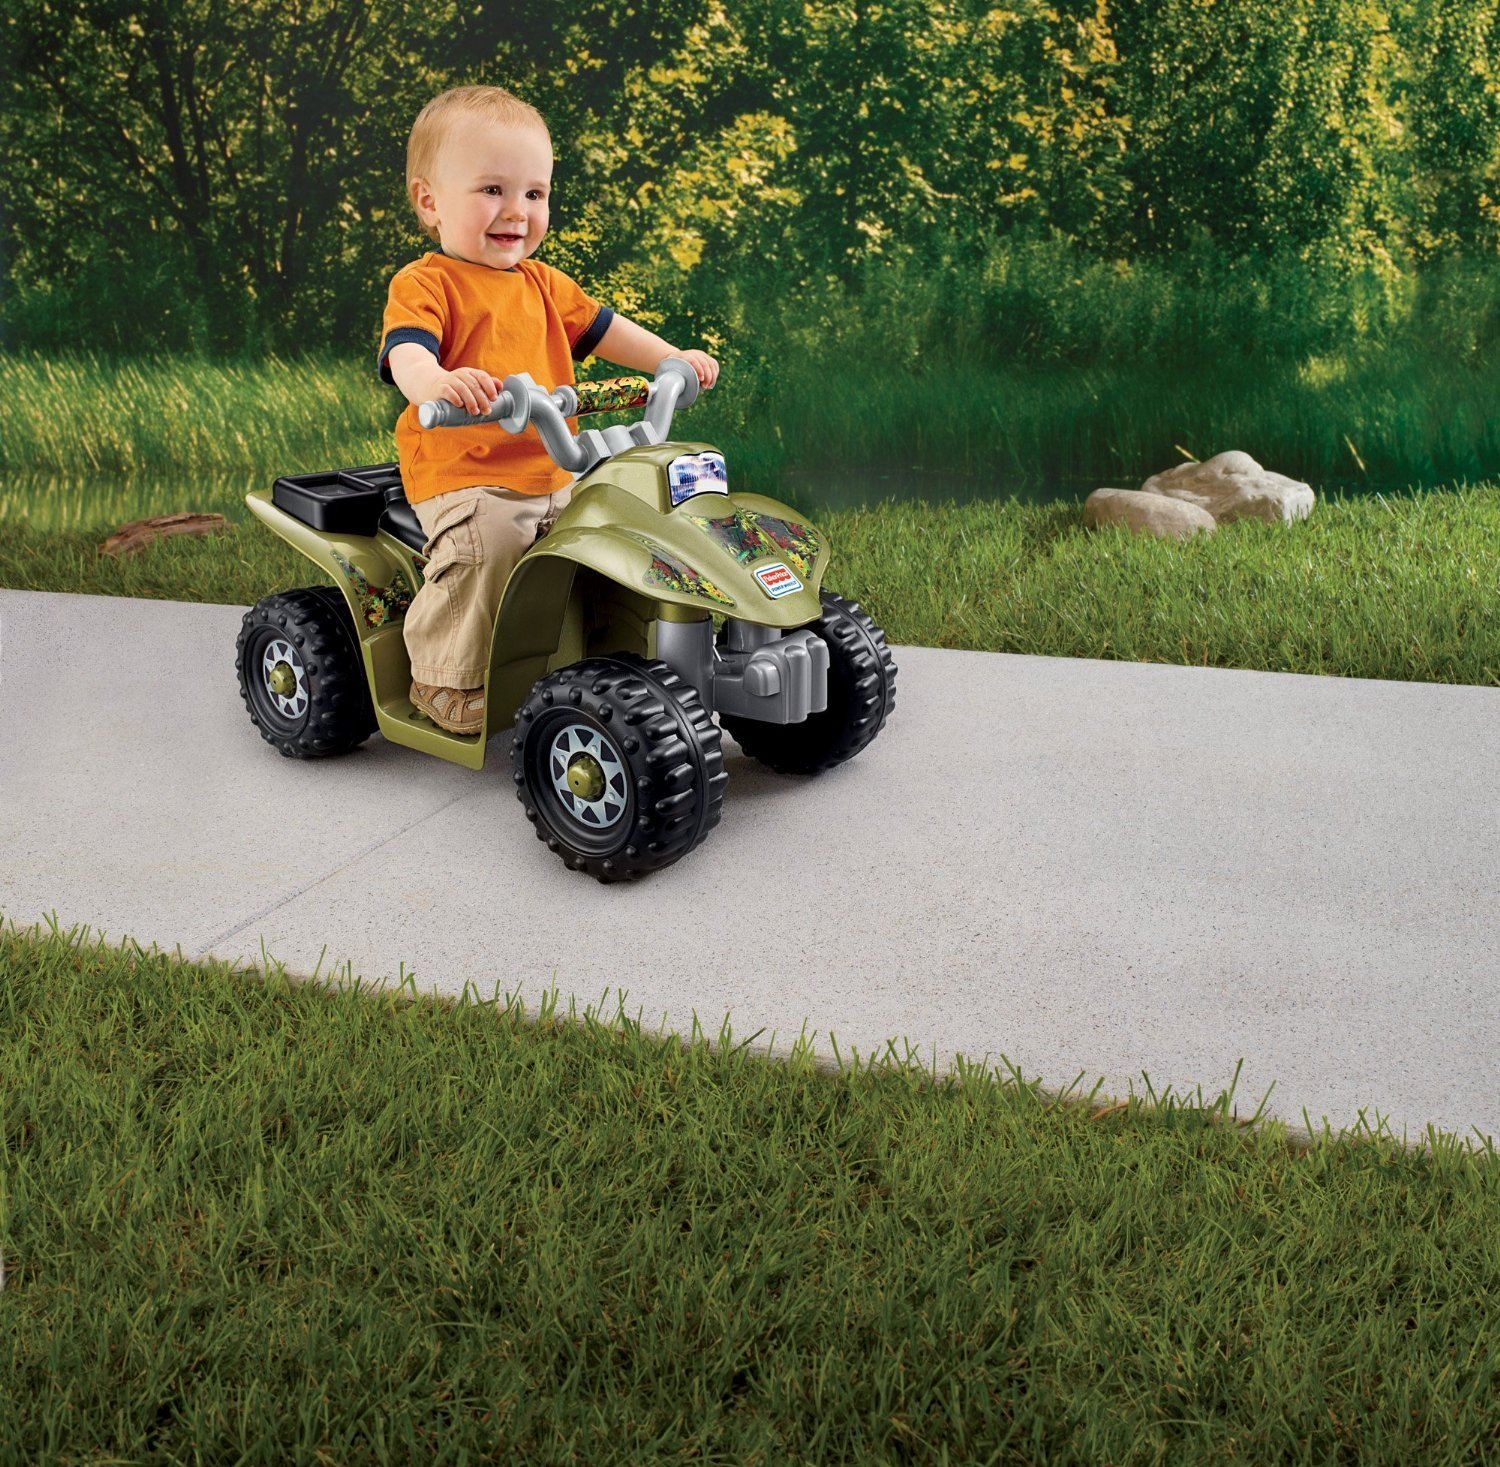 Power wheels camo quad 4 four wheeler play ride on toy for Motorized quad for toddler